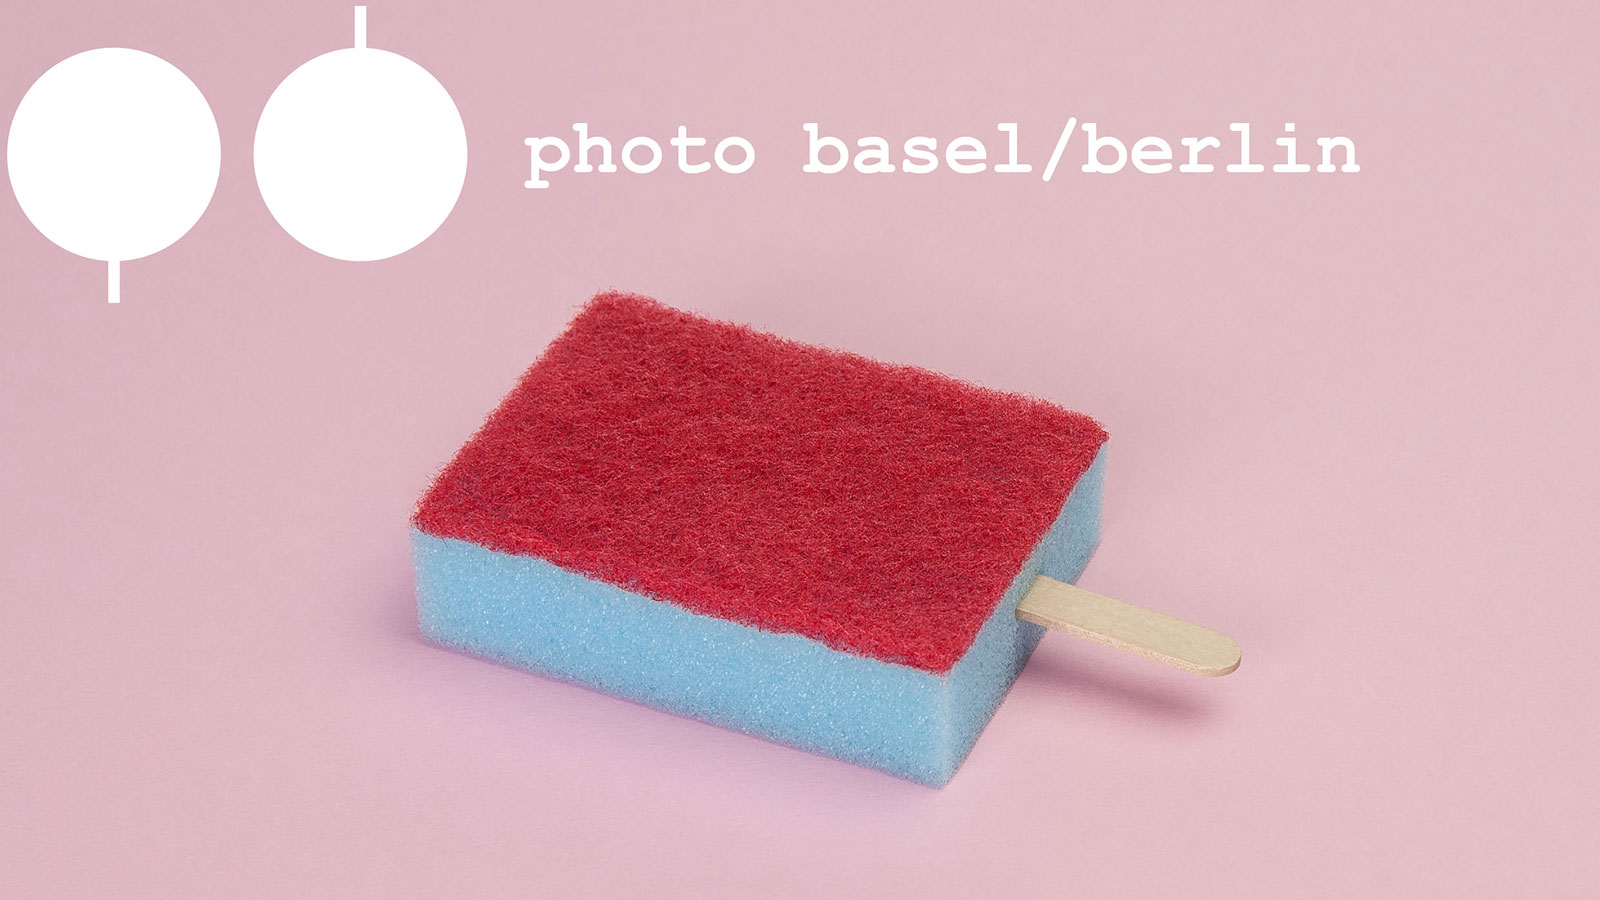 »photo Basel/berlin 2020«